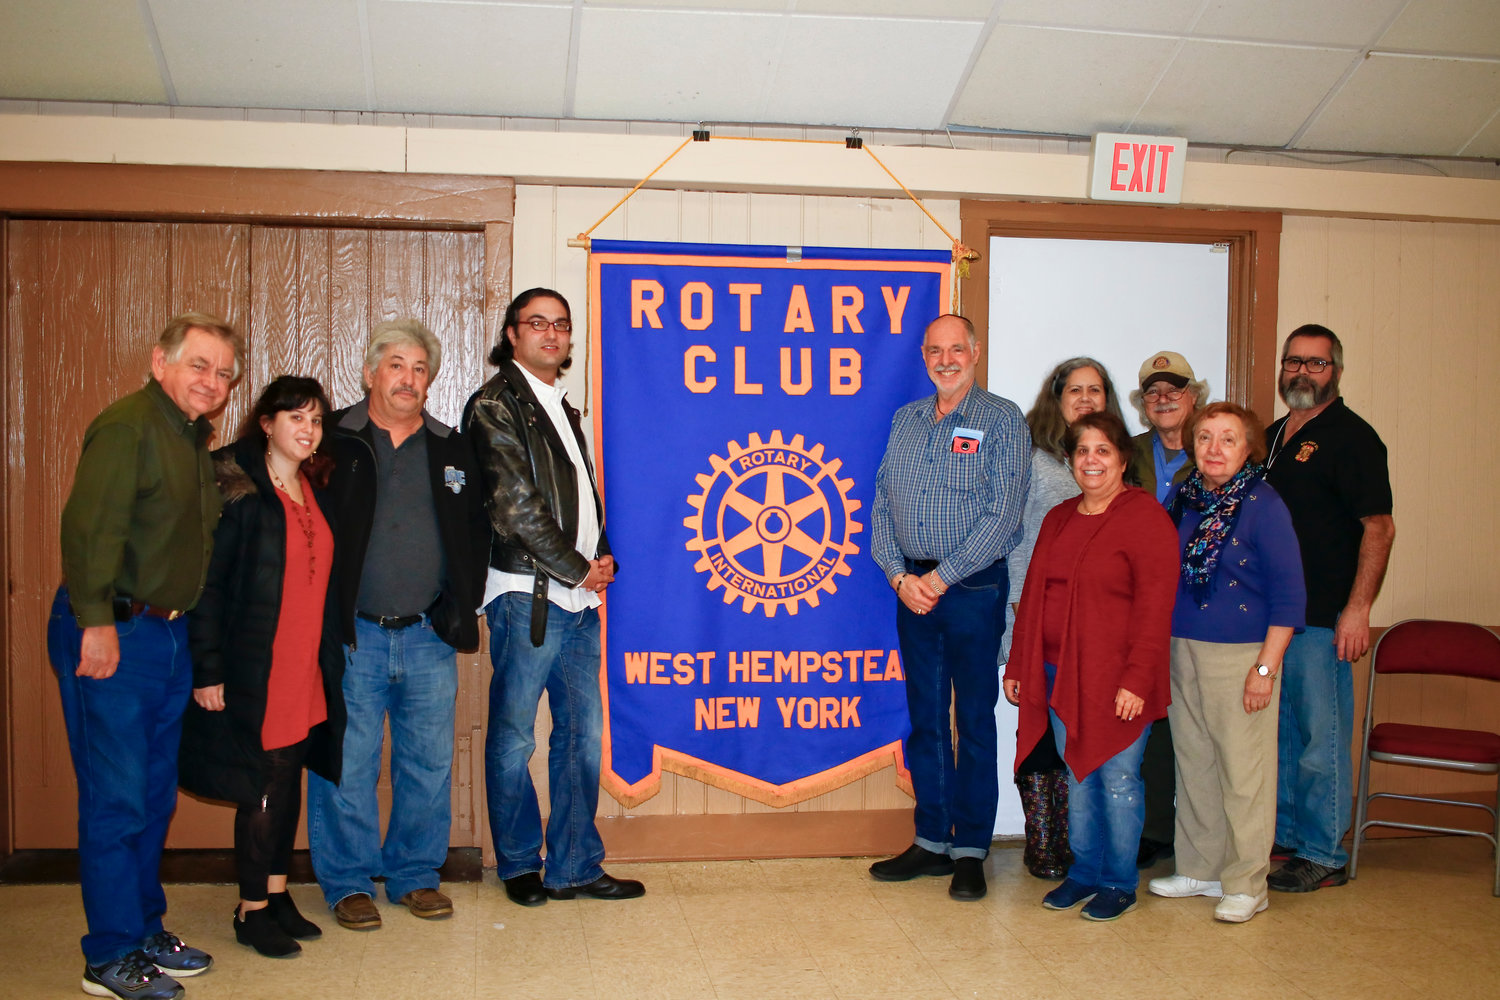 The Central Nassau Rotary Club will use half the proceeds from the art show to fund their local projects and charity work in Franklin Square and West Hempstead.